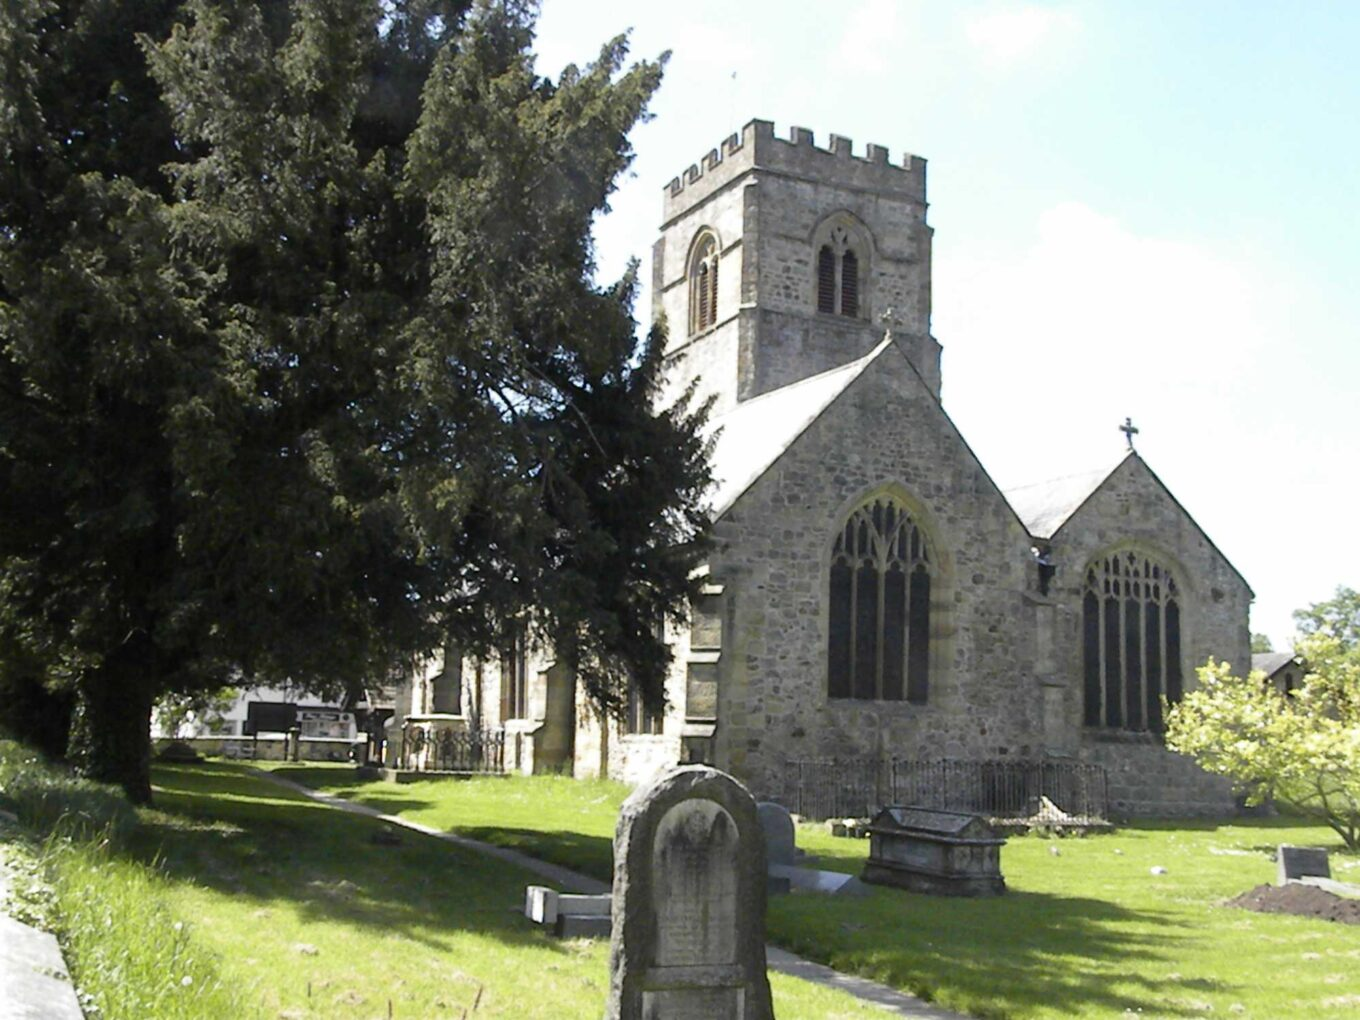 *St Mary's church in Chirk